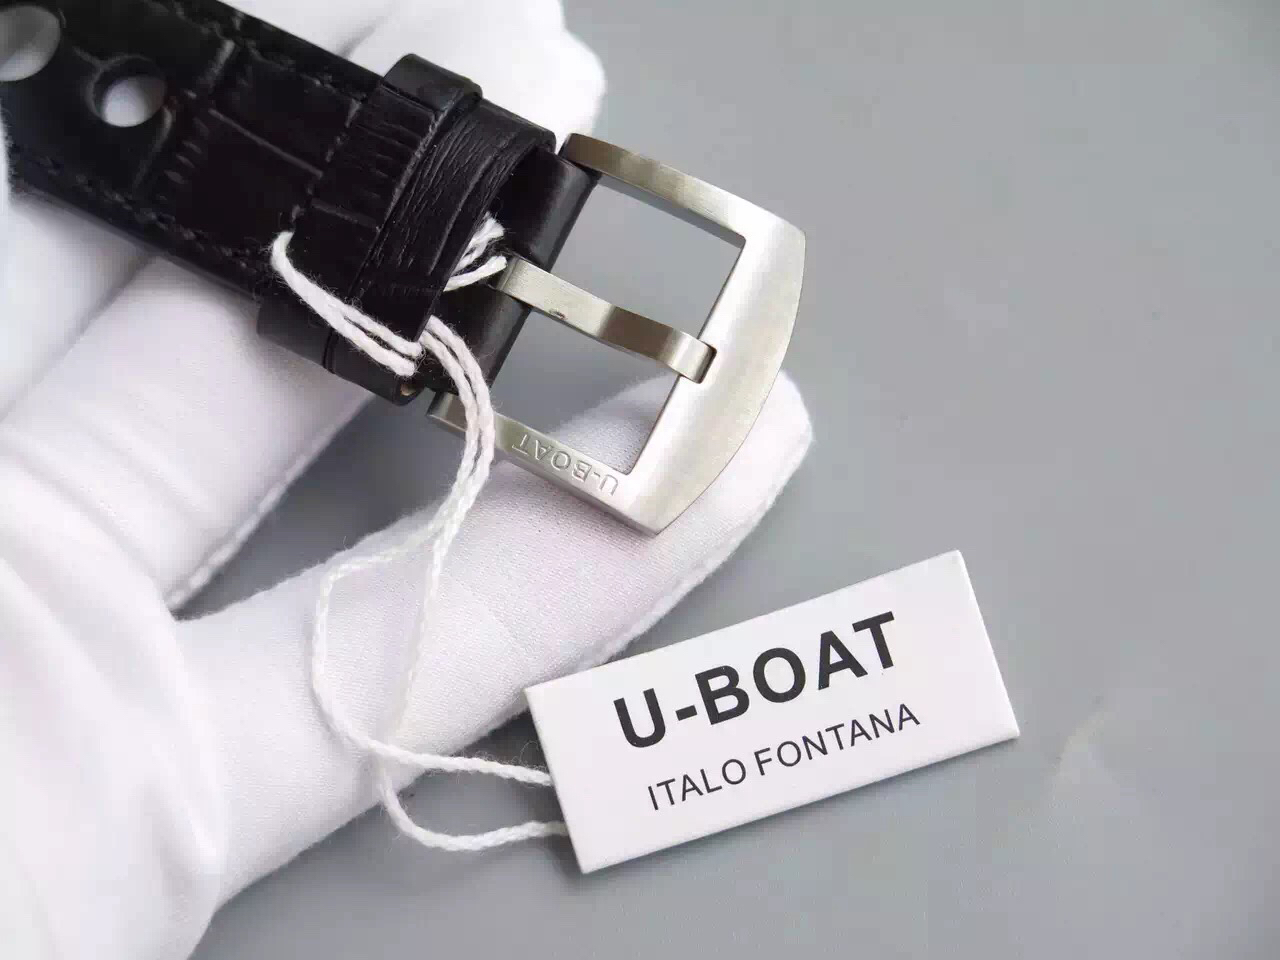 U-Boat Steel Buckle